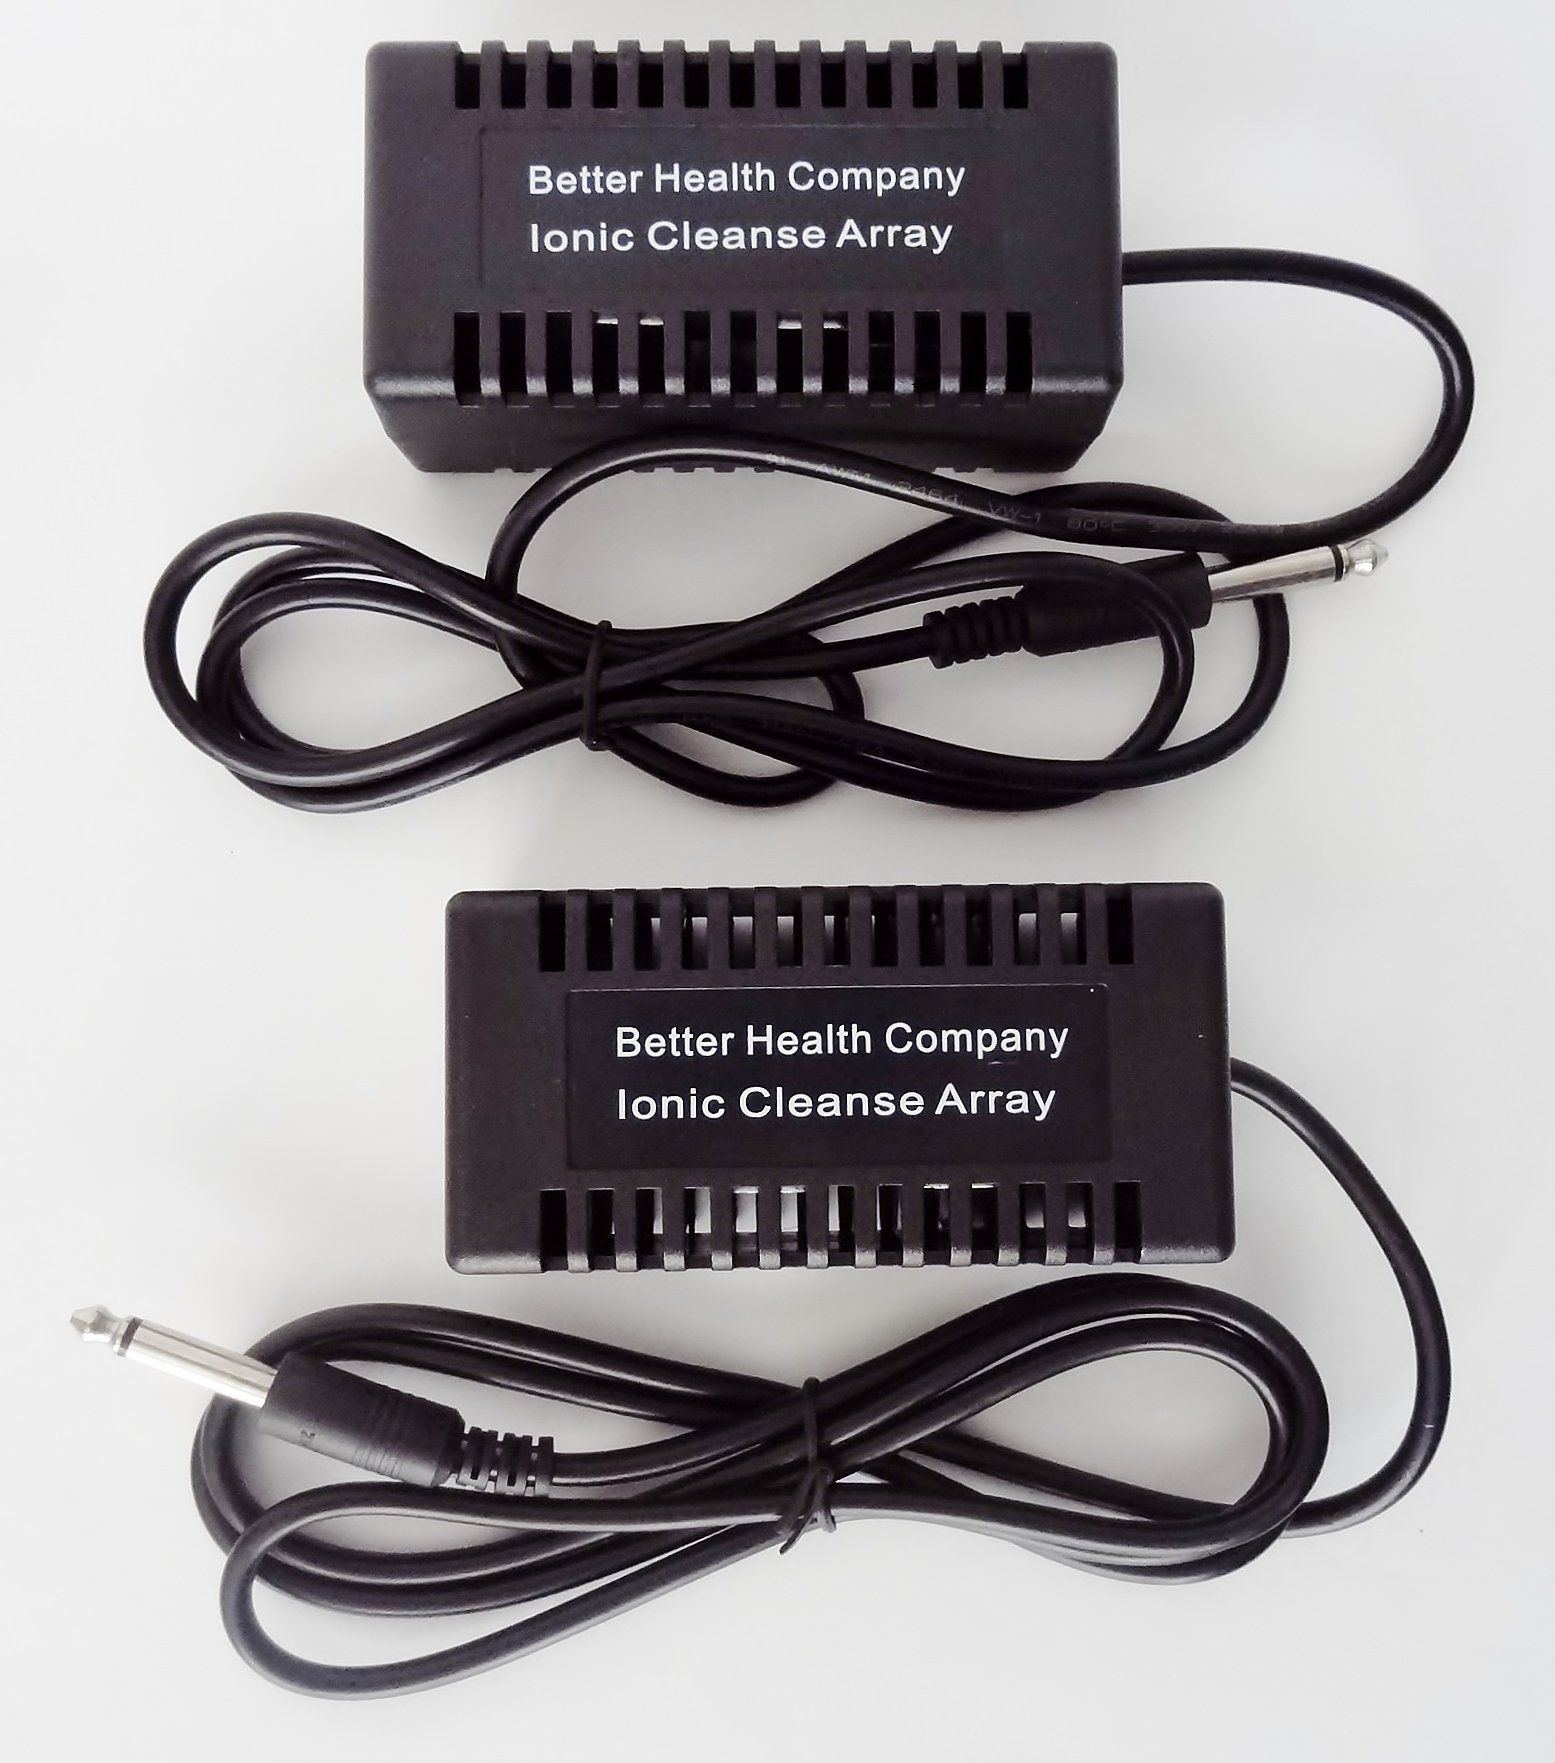 Rectangular Black Ionic Cleanse Detox Foot Spa Arrays by Better Health Company